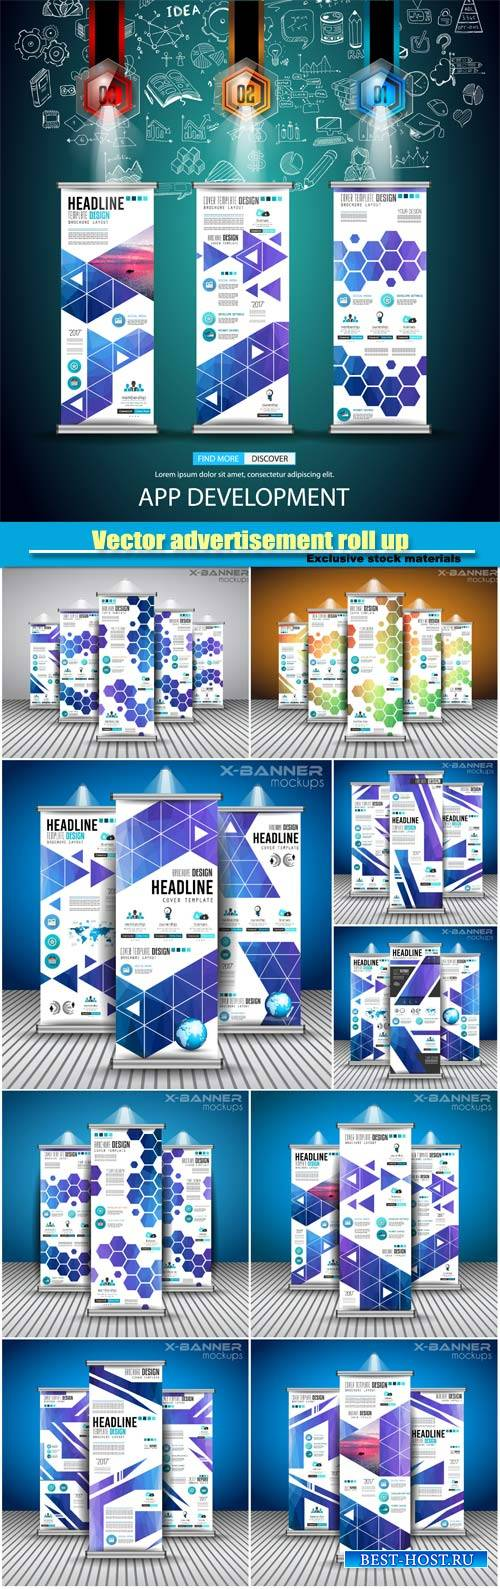 Vector advertisement roll up business flyers and brochure banners with vert ...